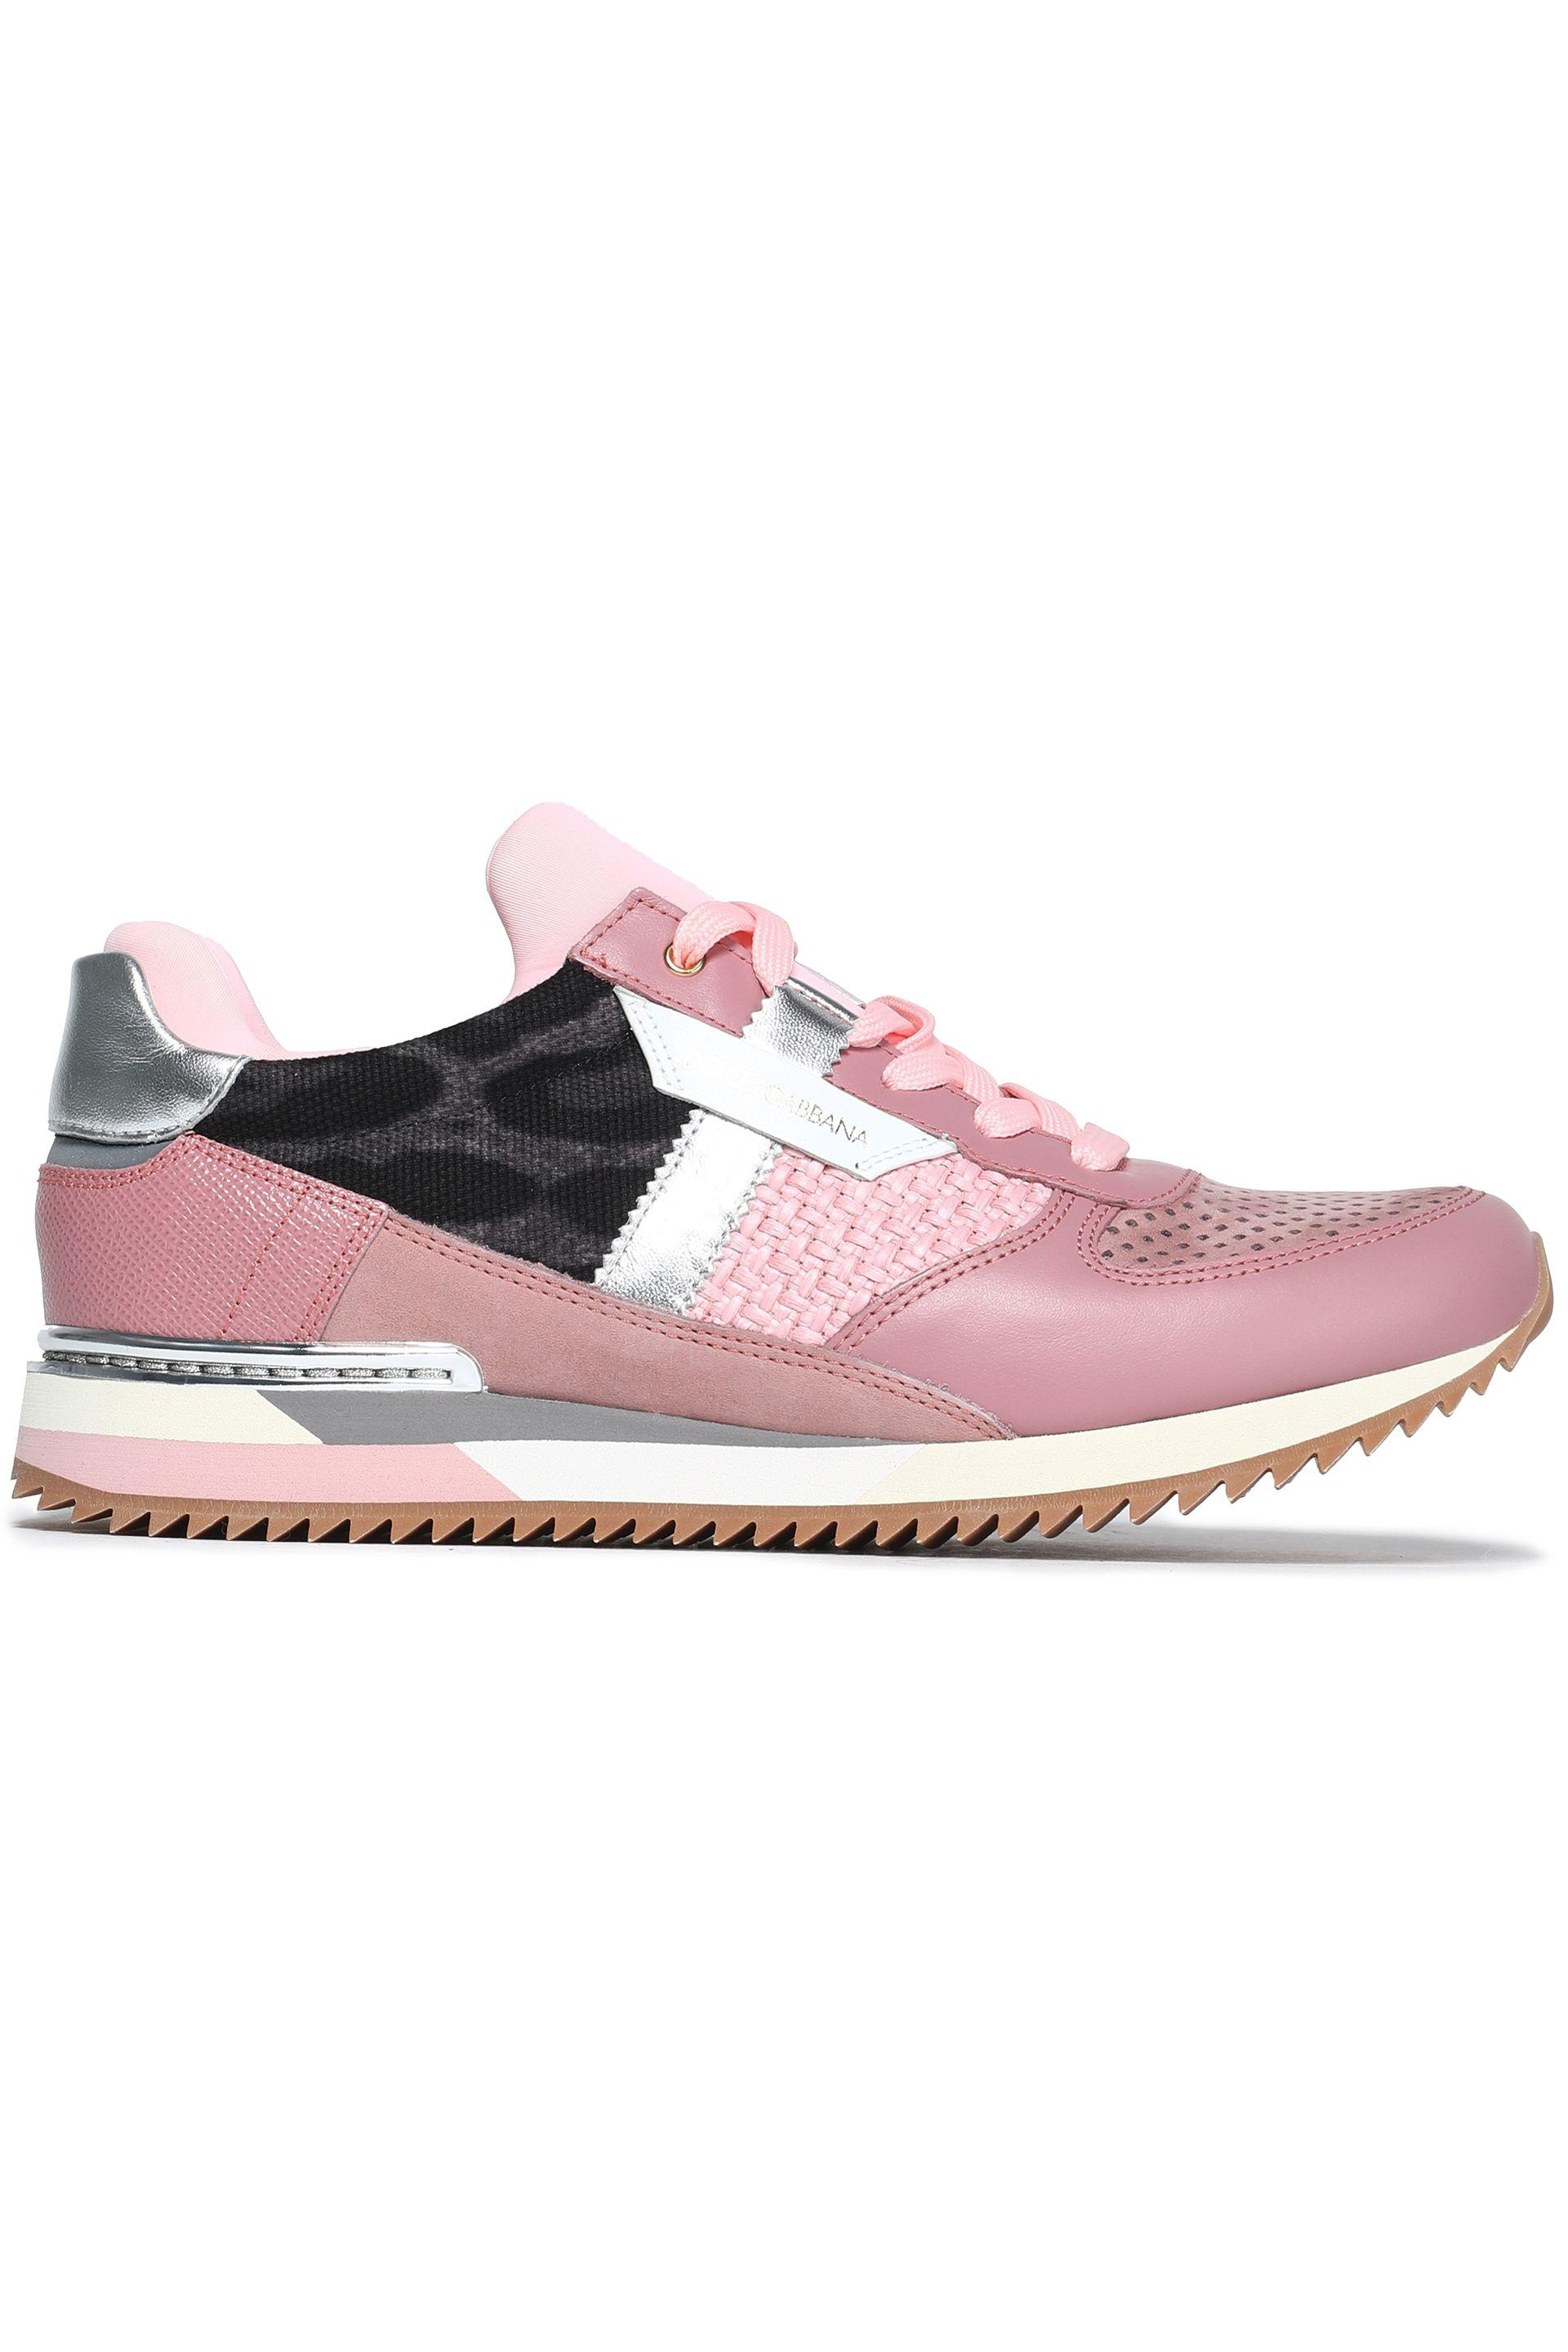 Dolce & Gabbana Woman Paneled Mesh Sneakers Antique Rose Size 36 Dolce & Gabbana Cheap Price Low Shipping Fee Pre Order Low Cost For Sale Buy Cheap For Sale Latest LprOHS0